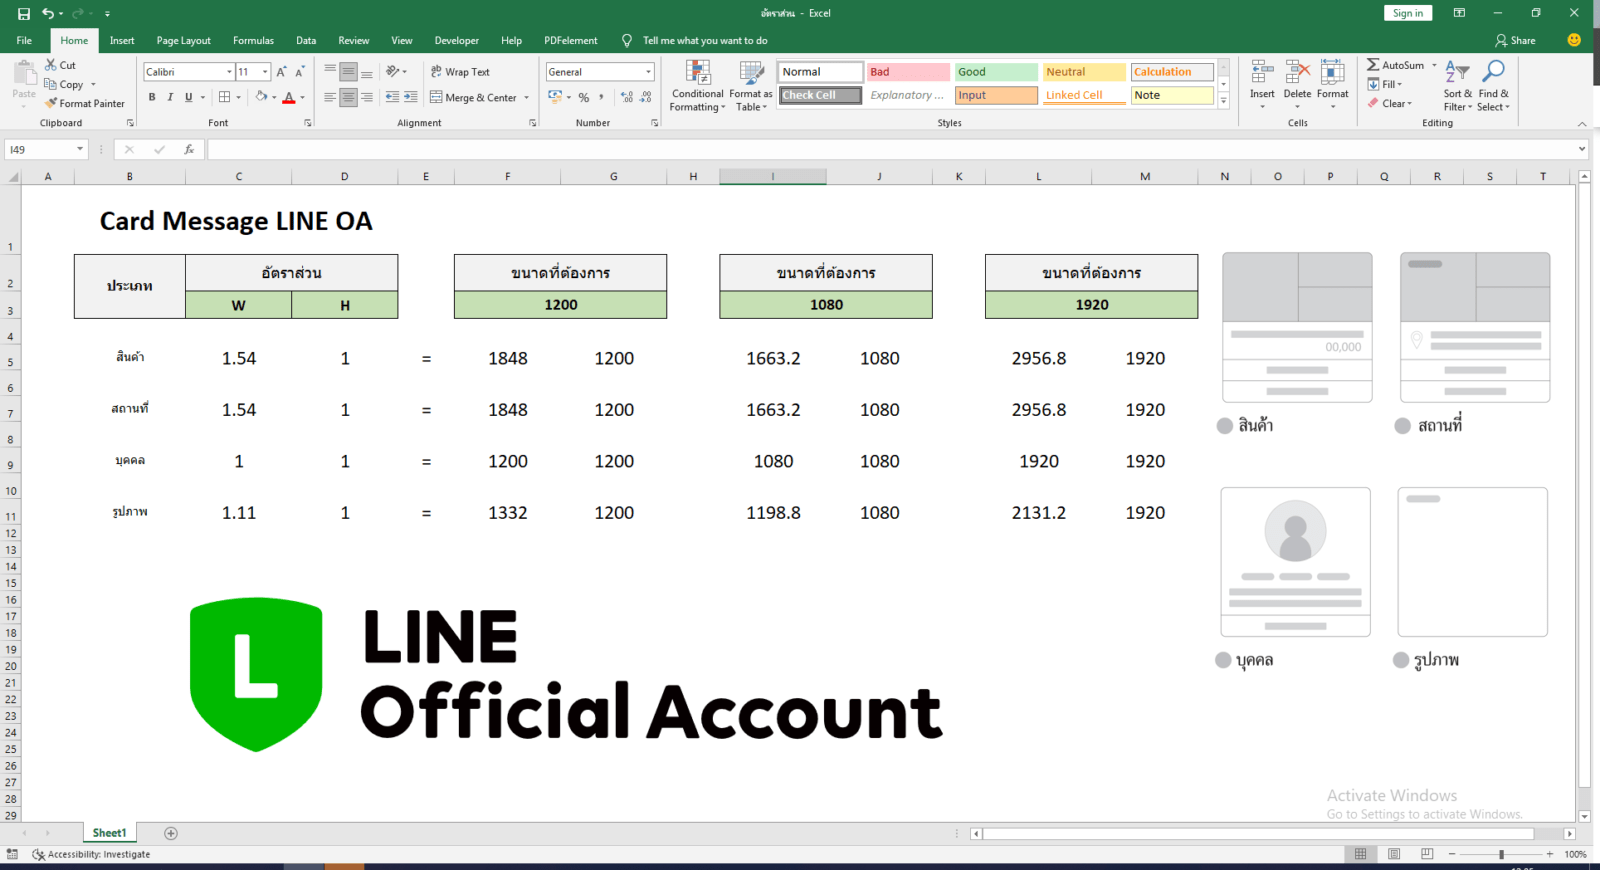 Excel for Card Message LINE OA